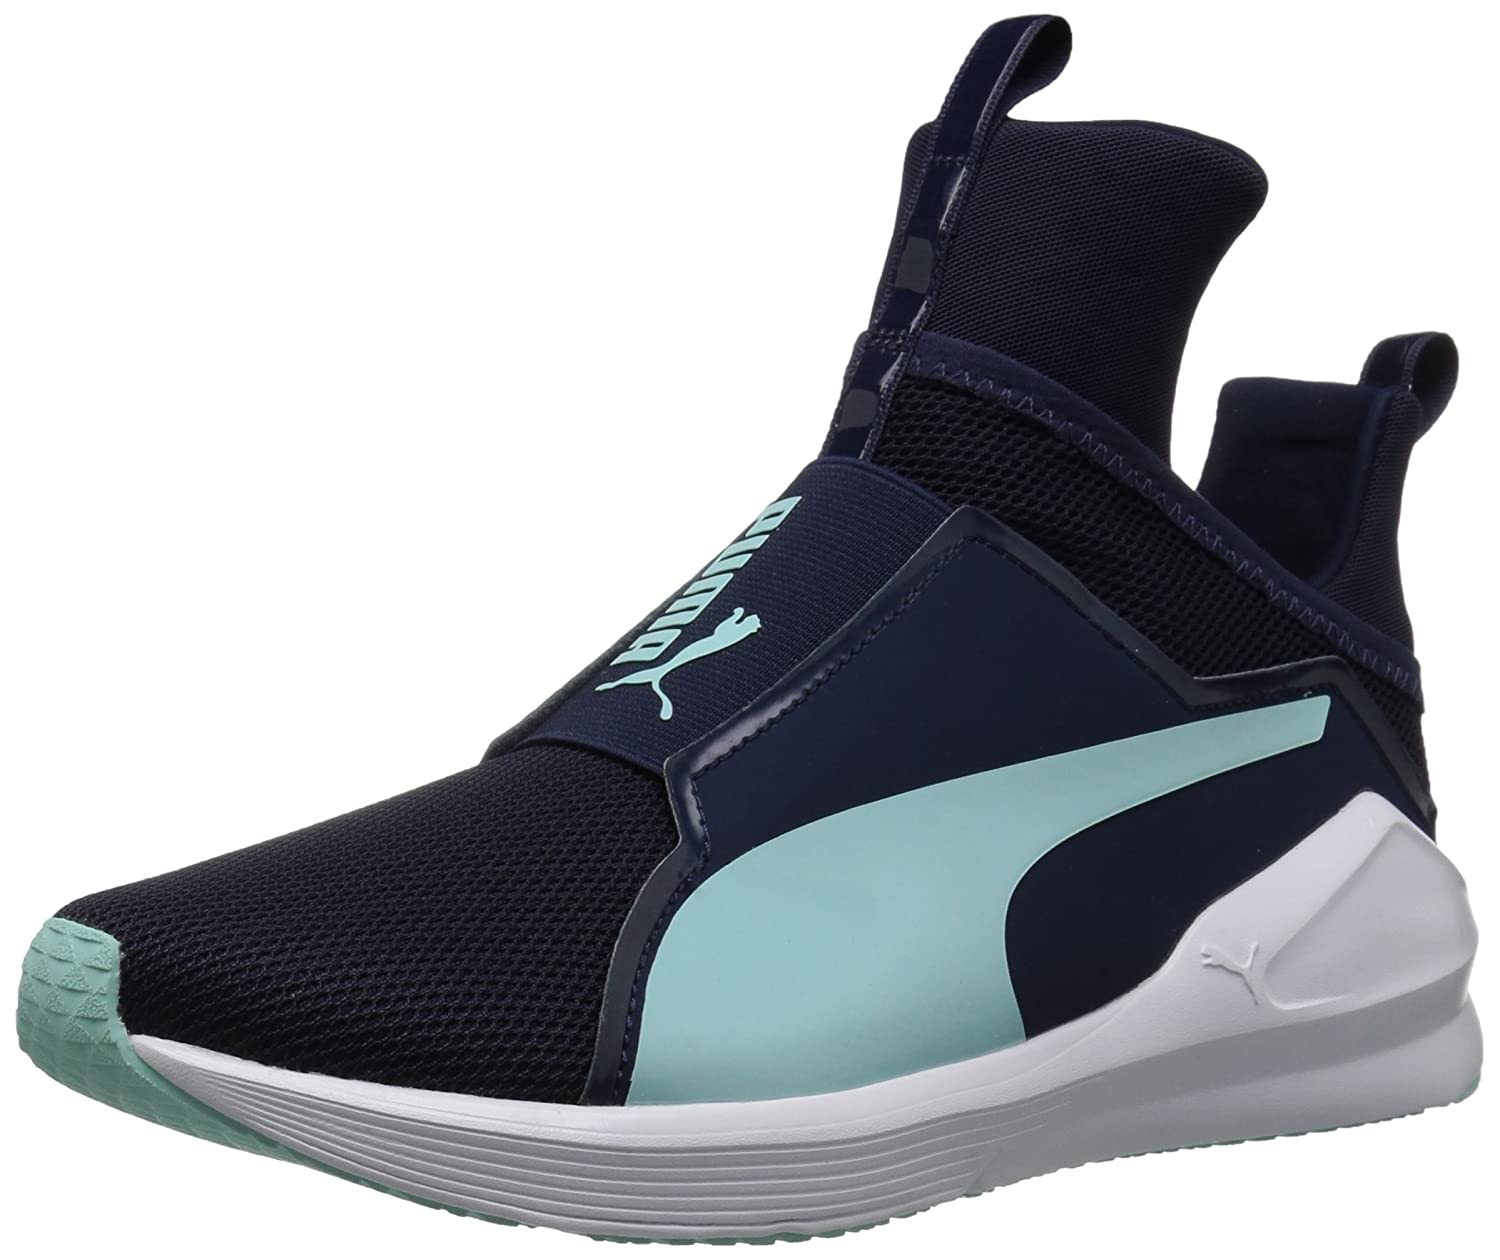 PUMA Women's Fierce Core Cross-Trainer Shoe B071GV4YBJ 9.5 B(M) US|Peacoat-island Paradise